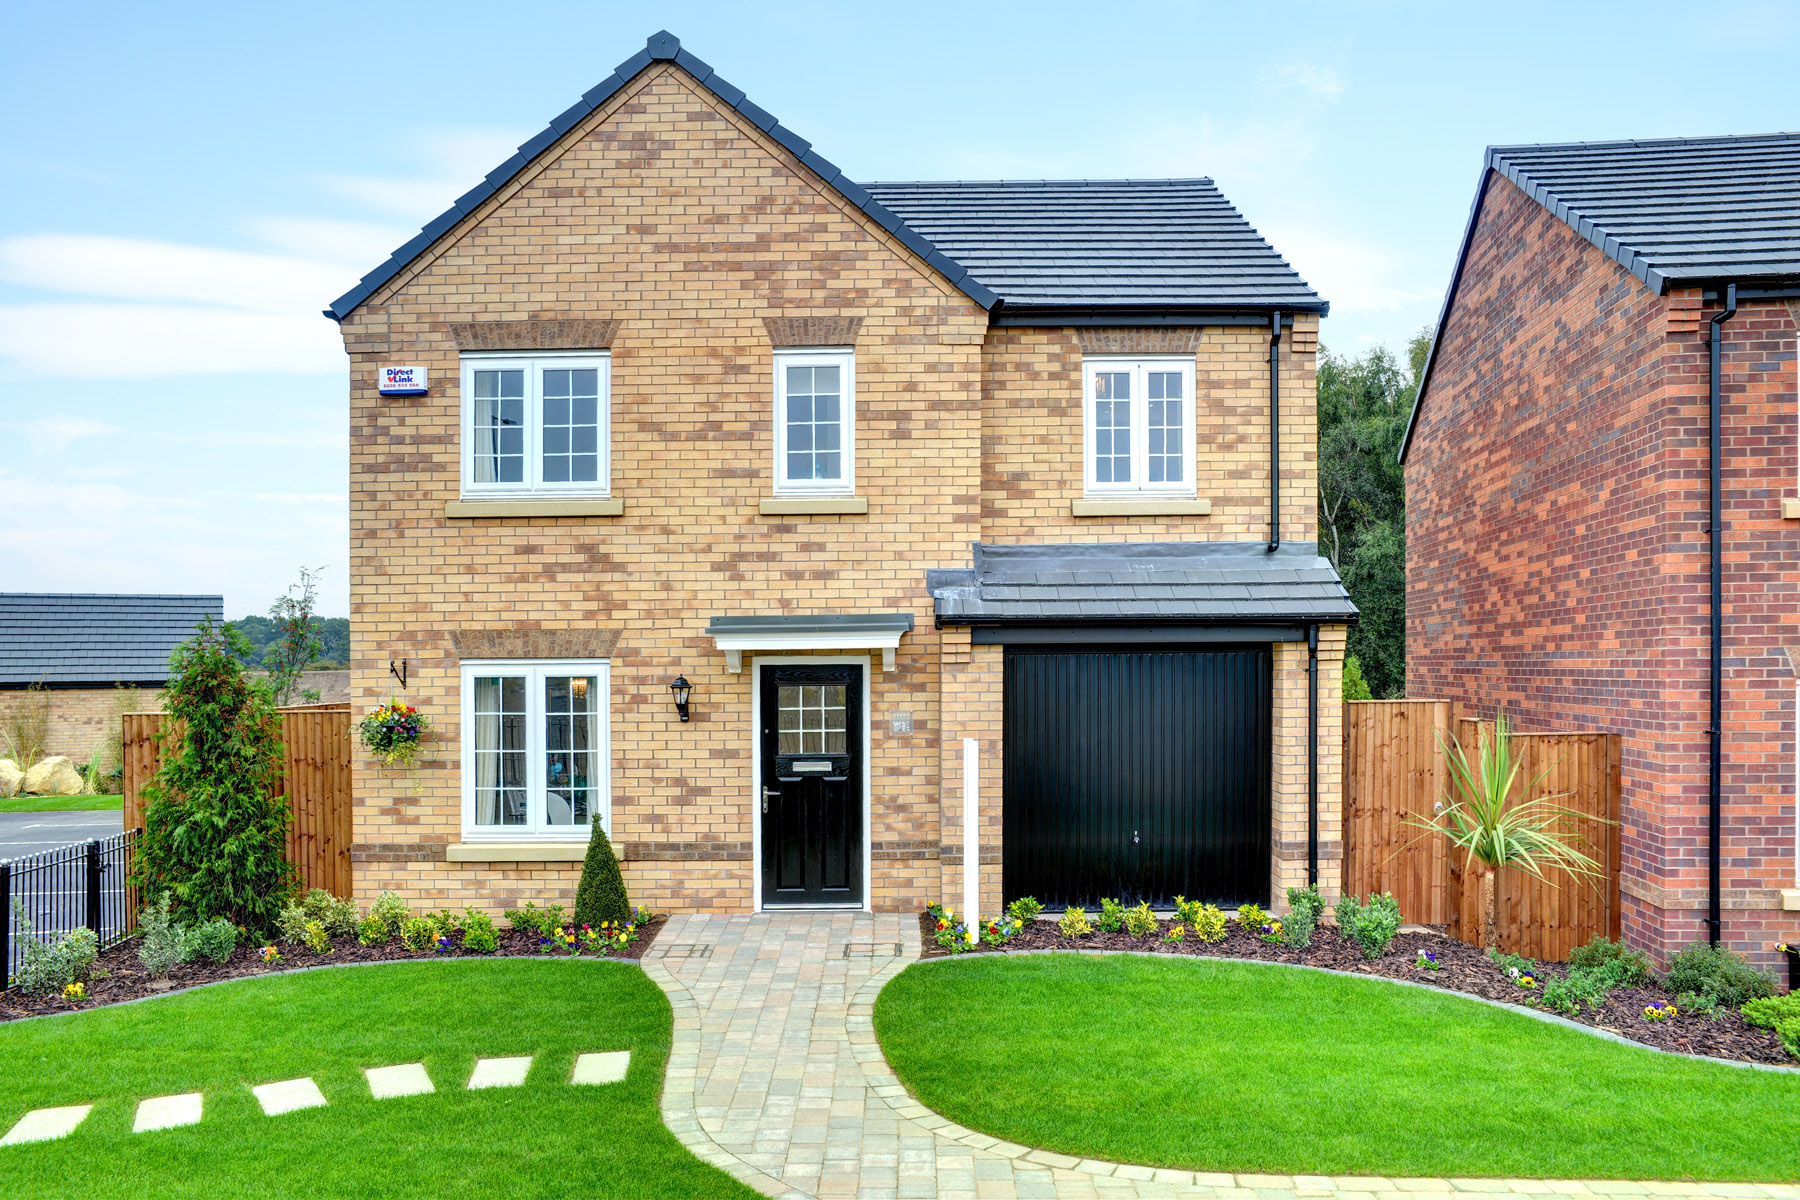 The Bradenham - Showhome - 4 bedroom detached